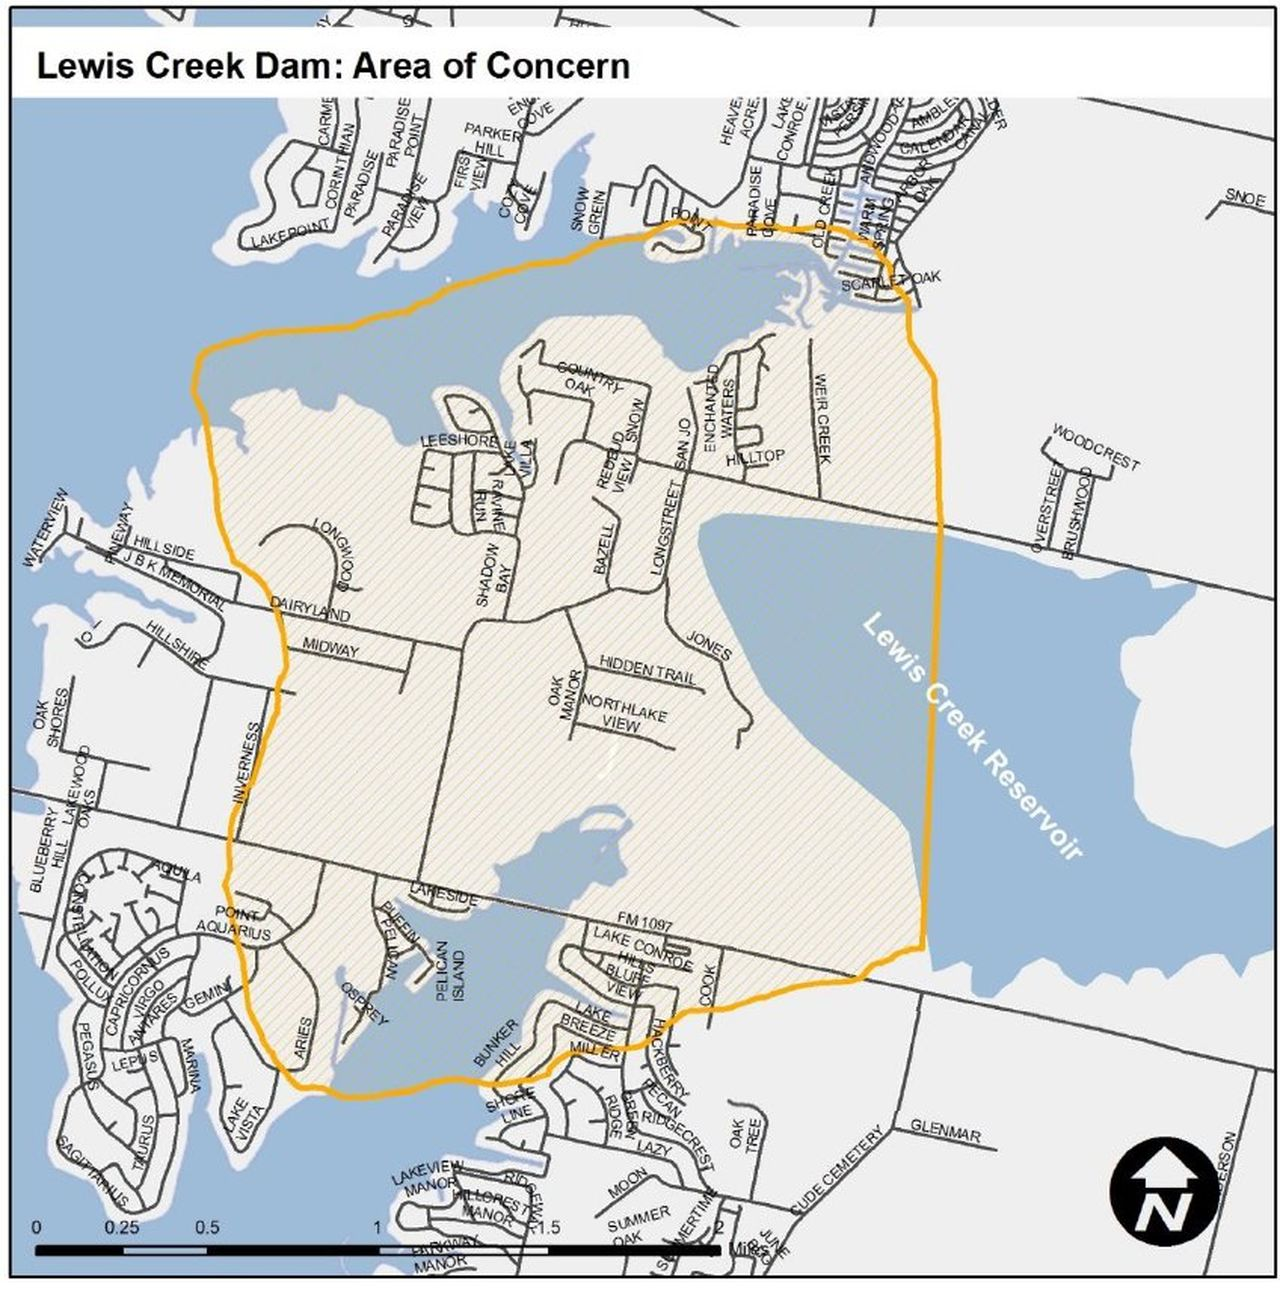 Lewis Creek Dam: Area of Concern